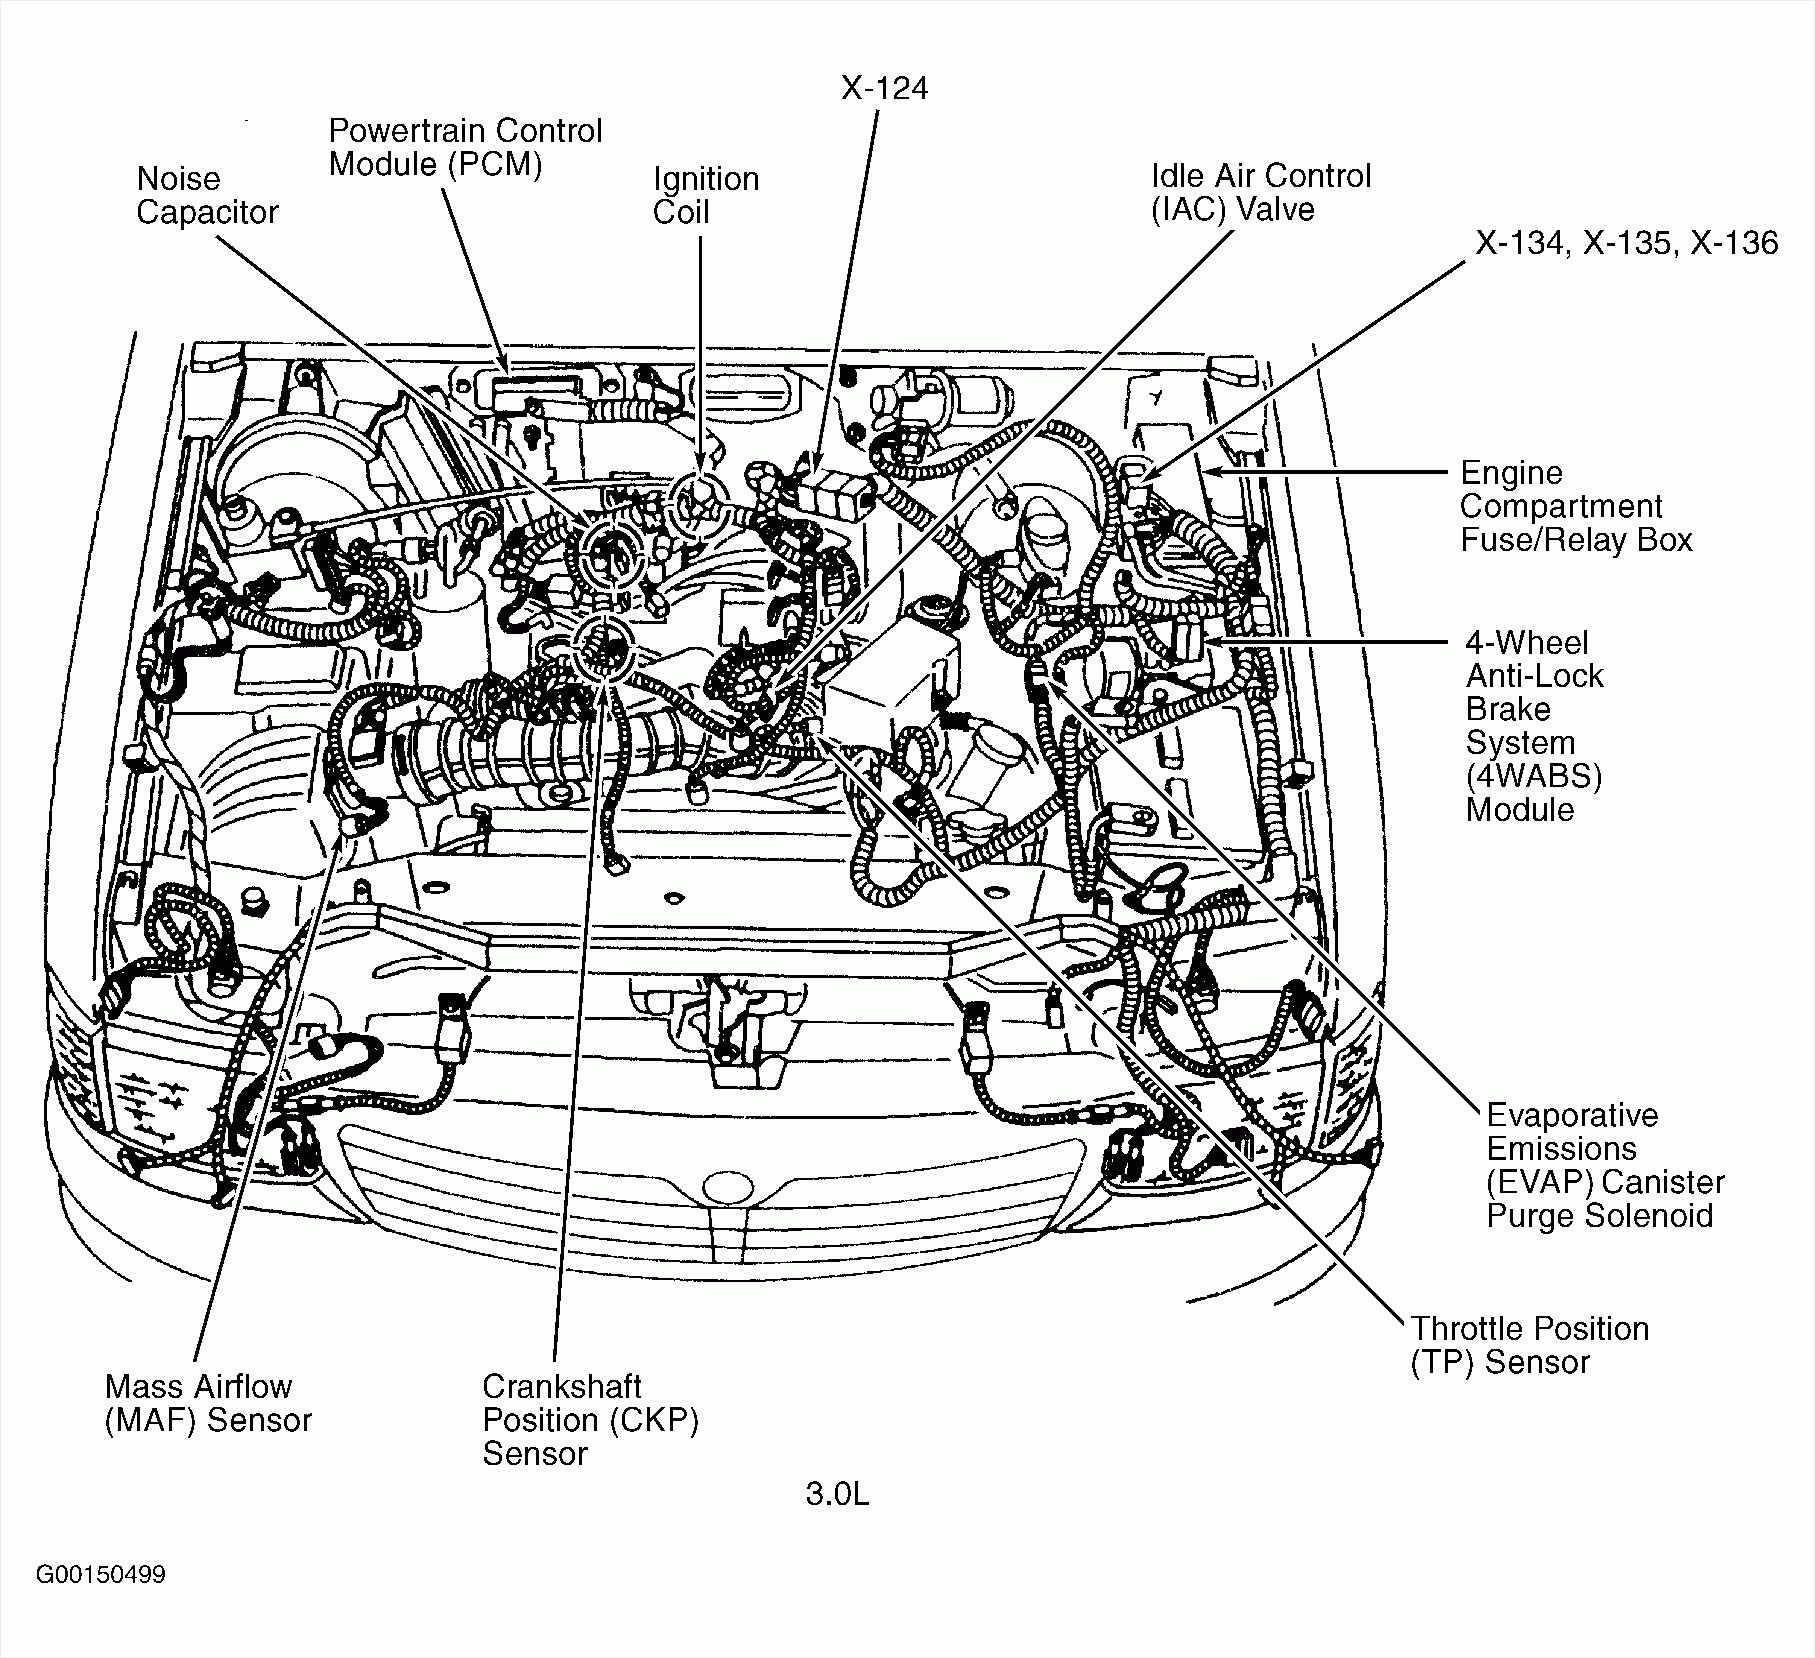 hight resolution of 1997 ford mustang engine diagram wiring diagram 1997 ford thunderbird engine diagram wiring diagram megasuper coupe